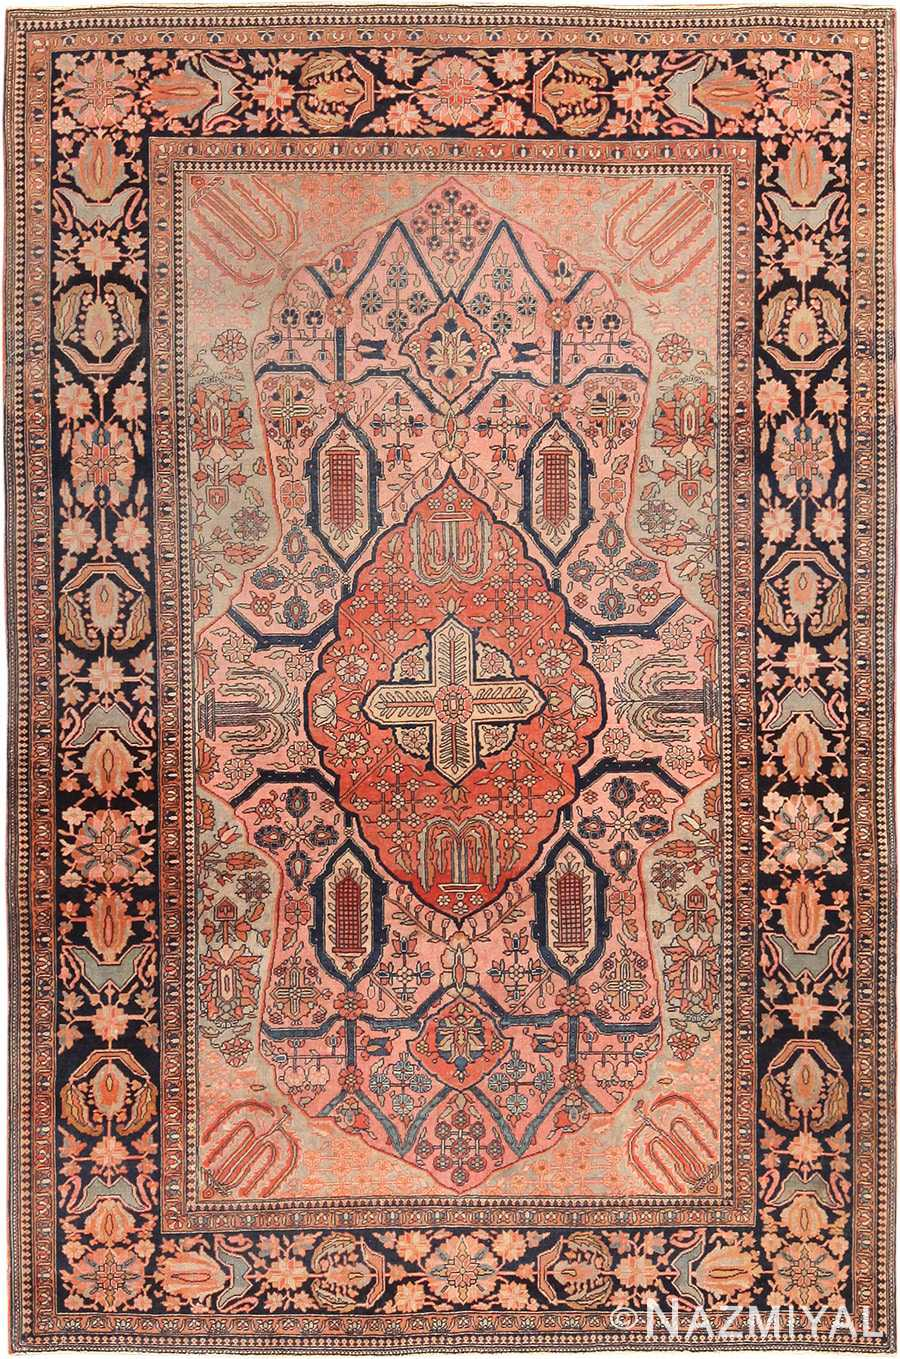 Picture of Antique Persian Mohtashem Kashan Floral Rug #70000 from the collection of Nazmiyal Antique Rugs NYC